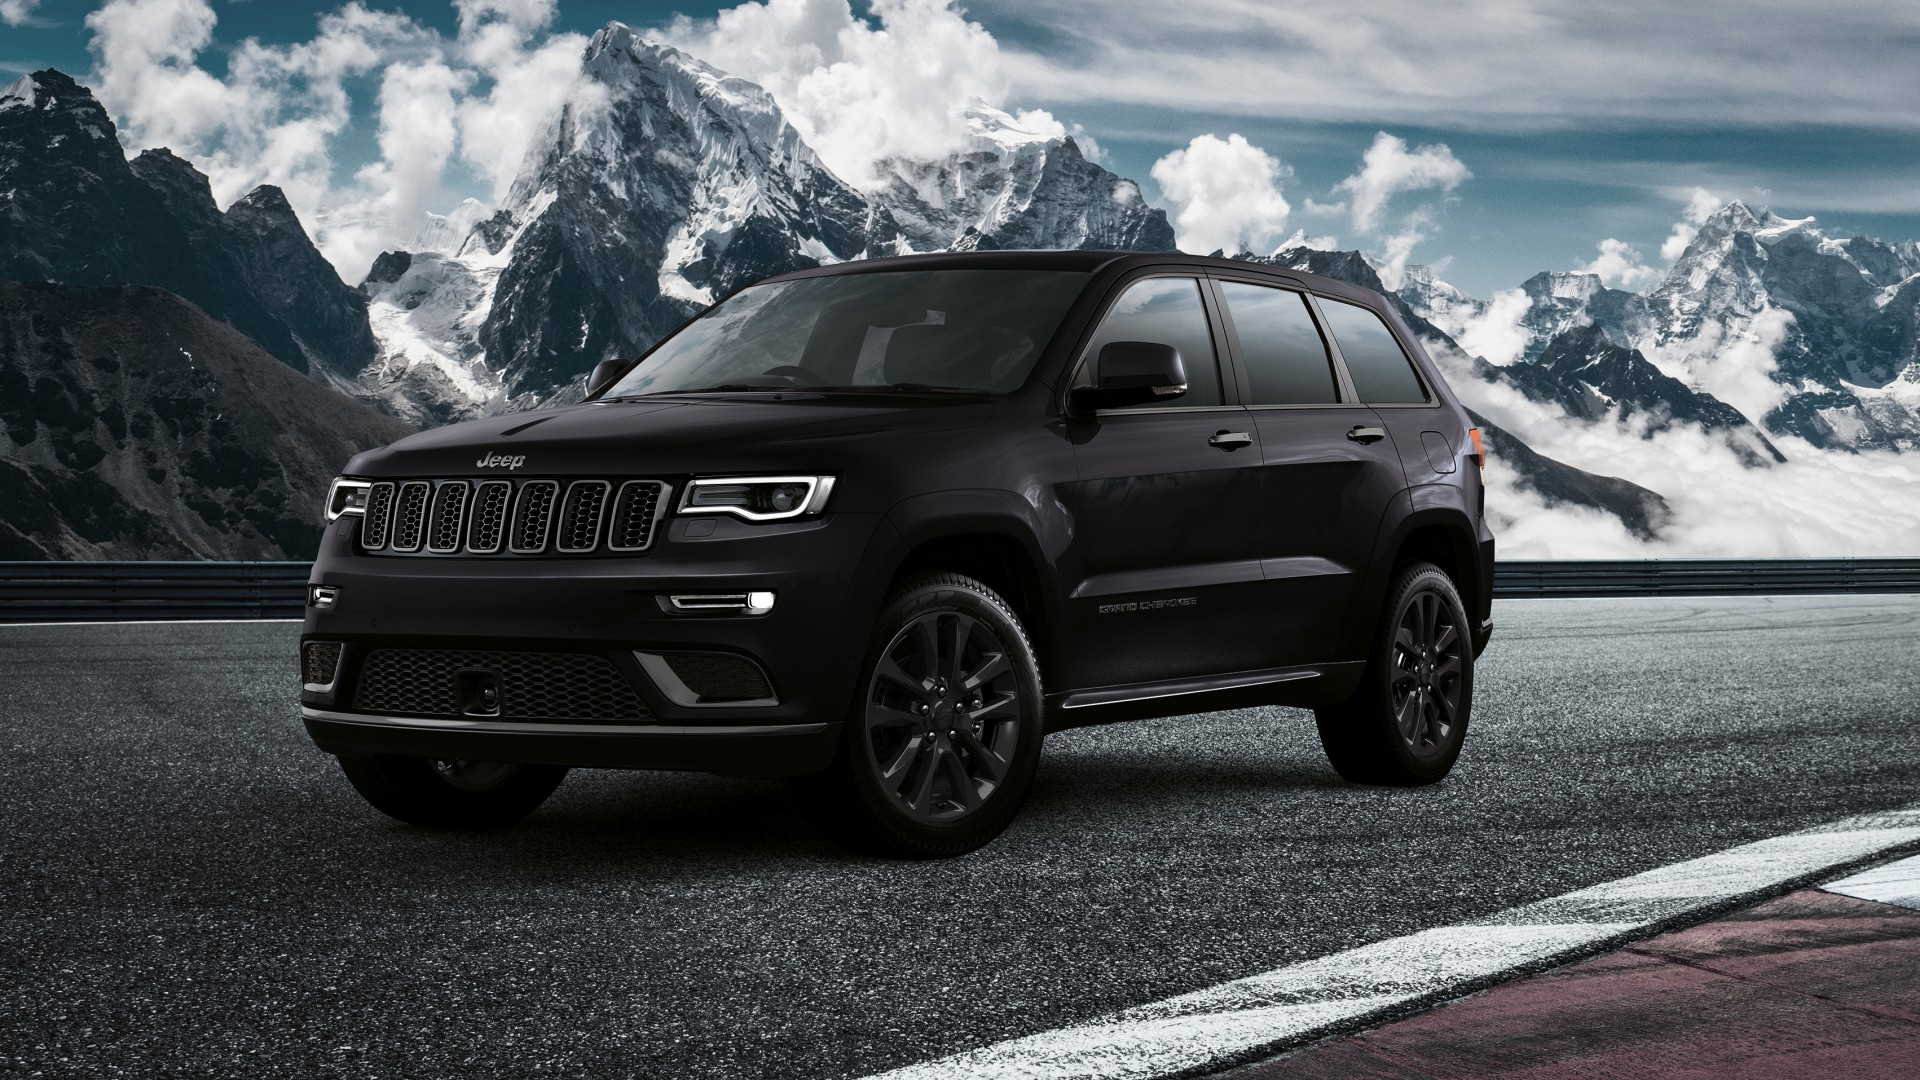 Cool Iphone X Wallpapers 2018 2019 Jeep Grand Cherokee S Wallpaper Hd Car Wallpapers